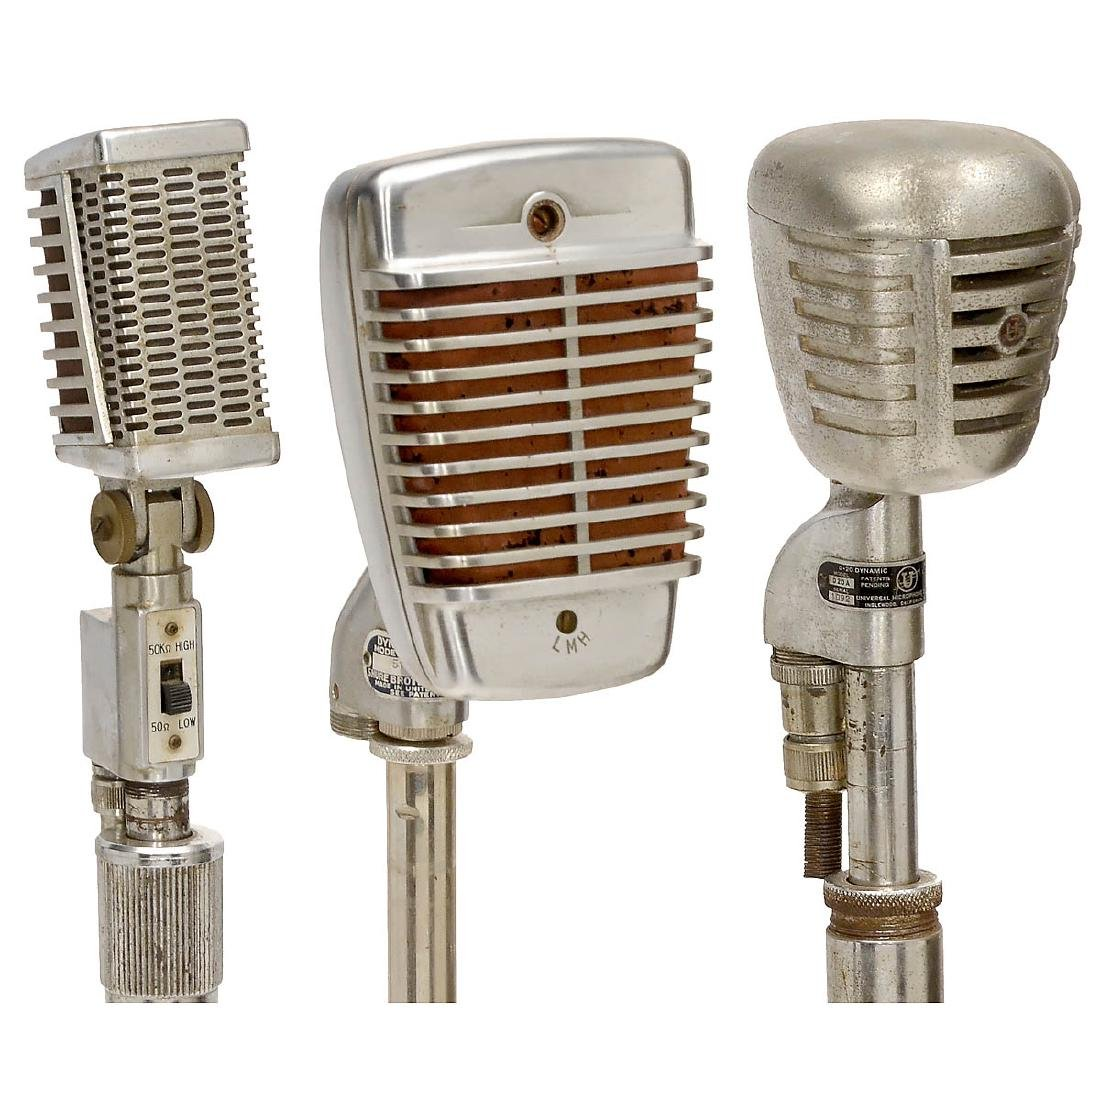 3 Microphones on Stands